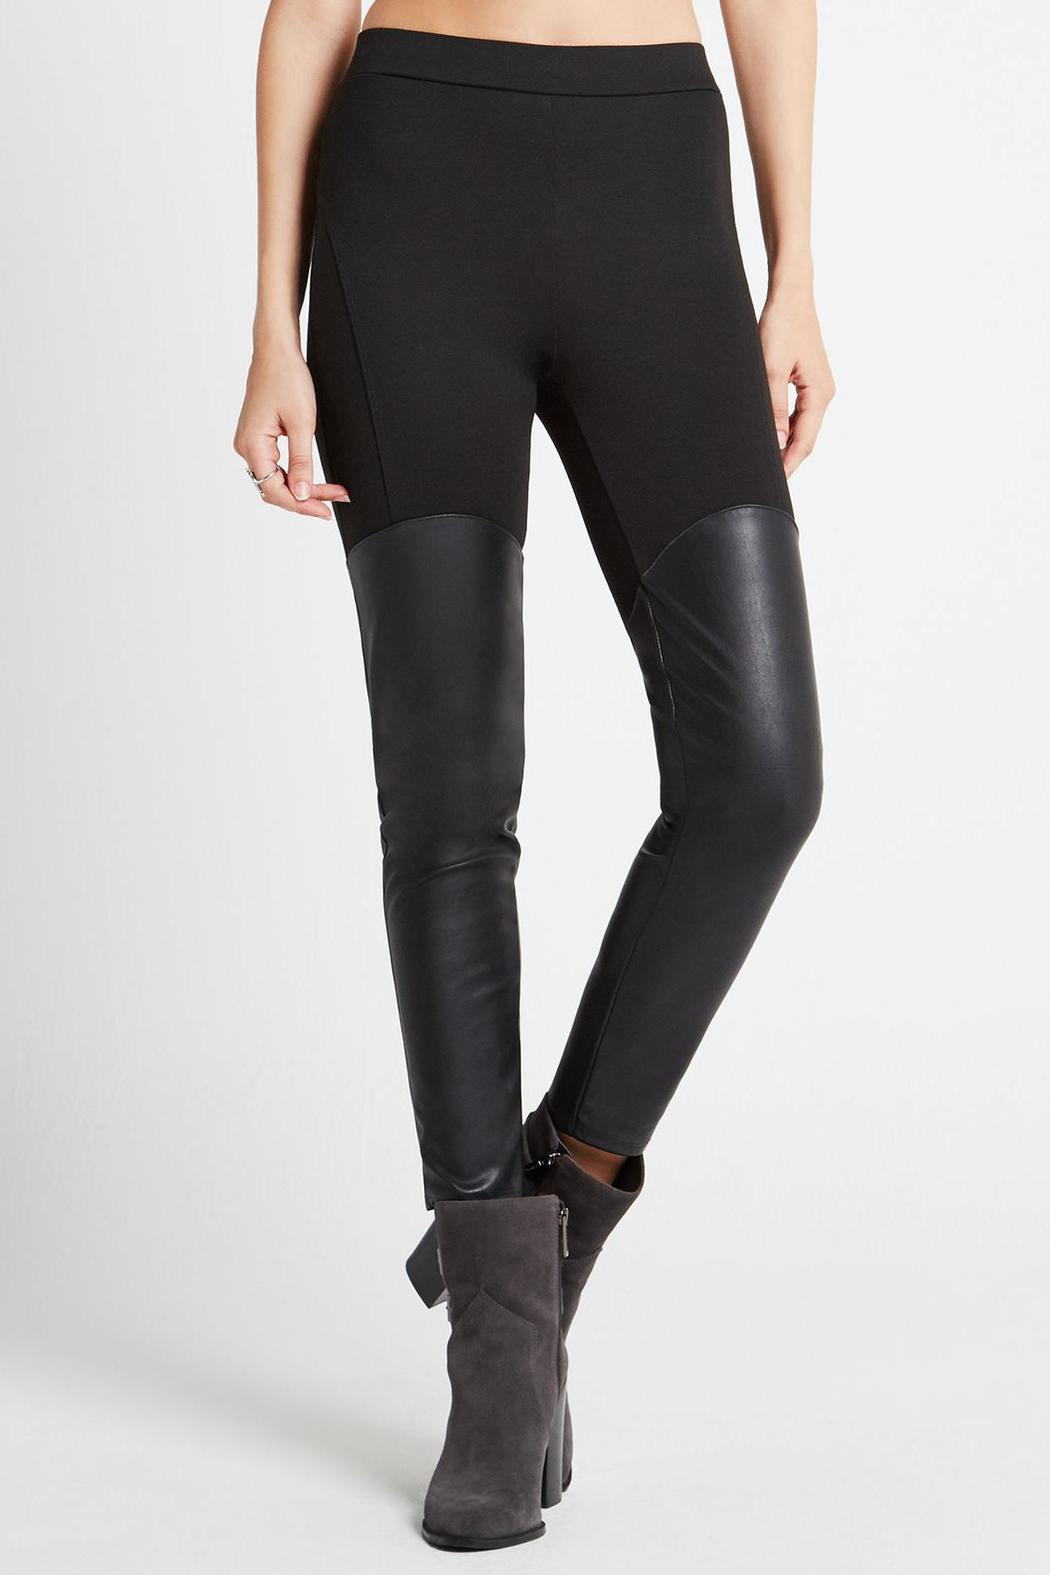 Bcbgeneration Faux Leather Panel Legging From Hudson Valley By Bfree Shoptiques